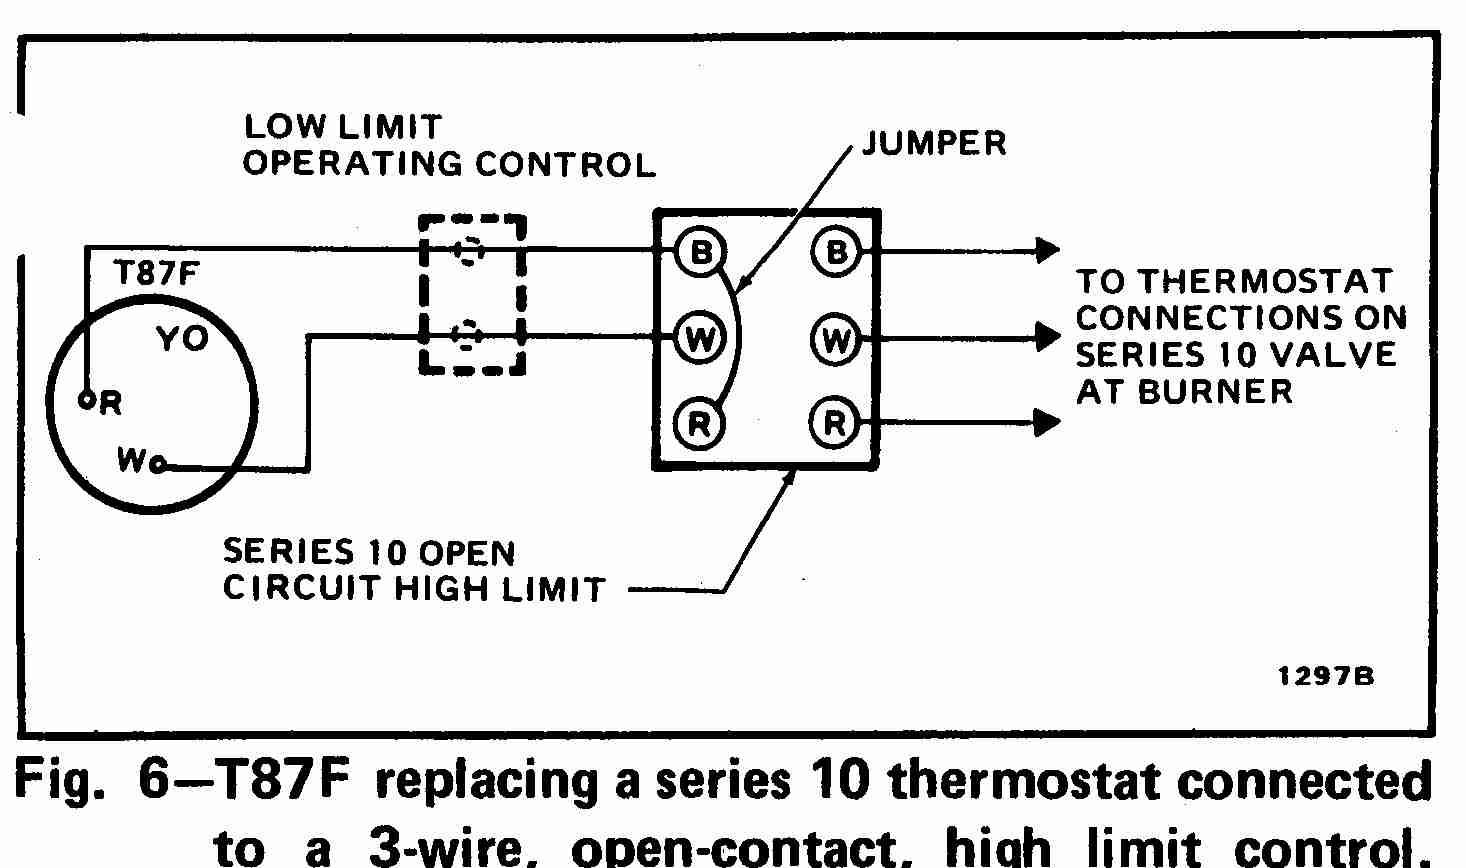 TT_T87F_0002_3WHL_DJF room thermostat wiring diagrams for hvac systems wiring diagram for a thermostat at readyjetset.co